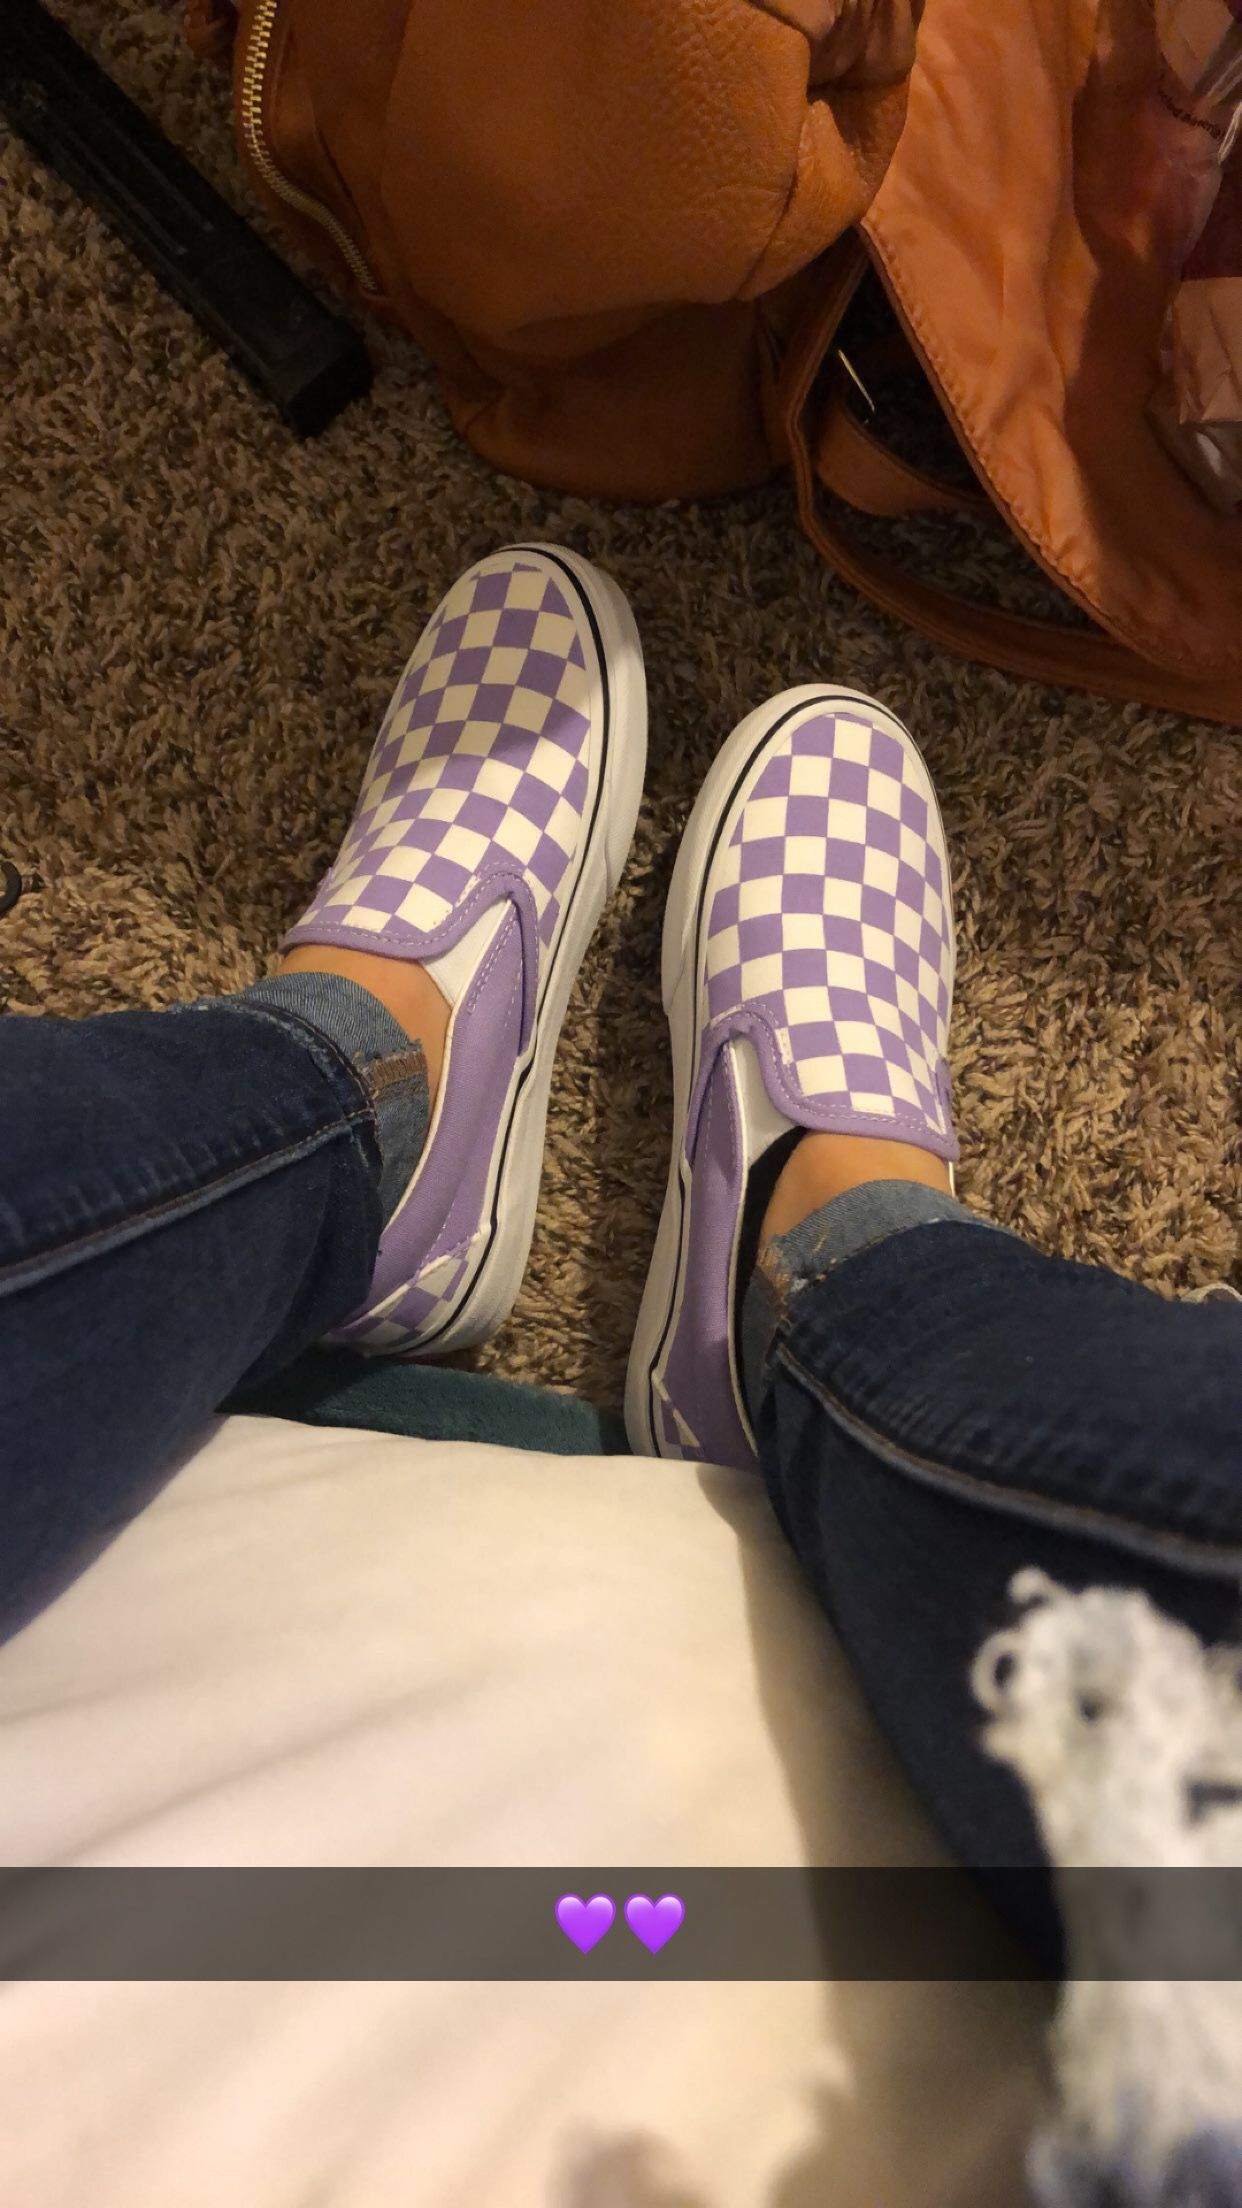 vans #new #shoes #checkered | Clothes in 2019 | Purple vans